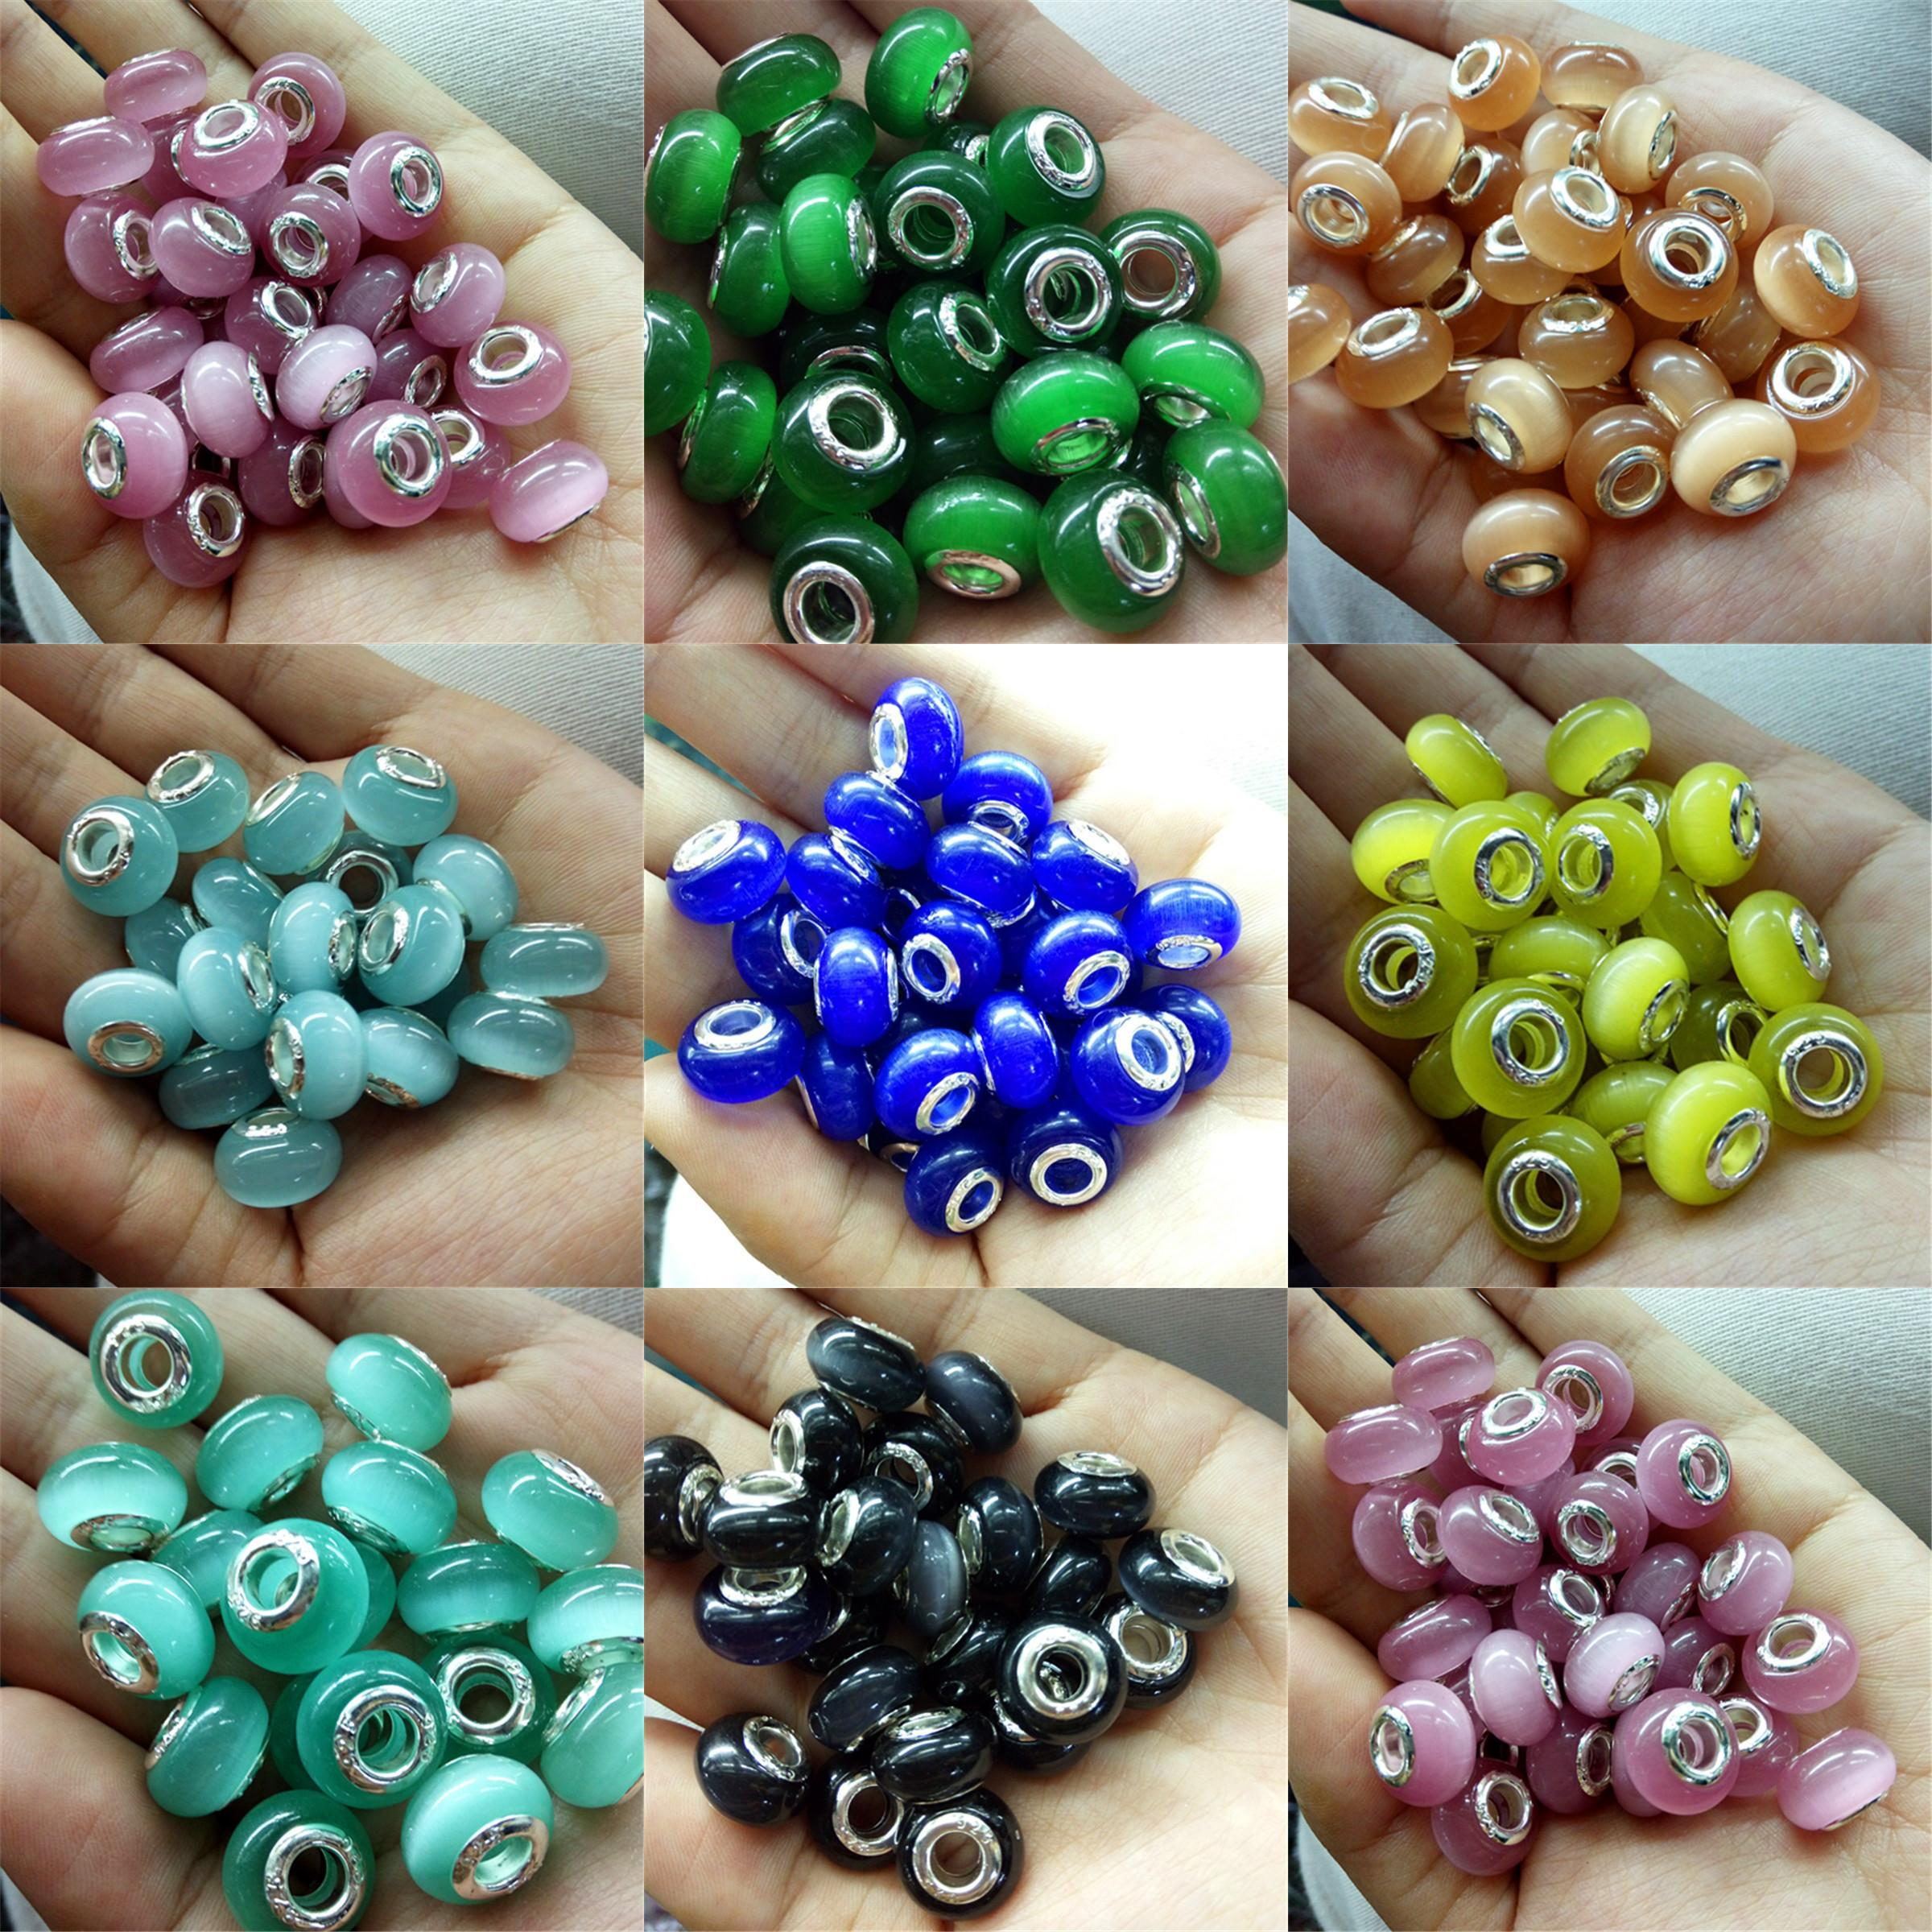 2019 Jewelry Opal Stone Round Beads High Polished 925 Silver Core Plated  Loose Beads 5mm Big Hole Fit Charms European Bracelet From Chenbao jewelry be137a39f231